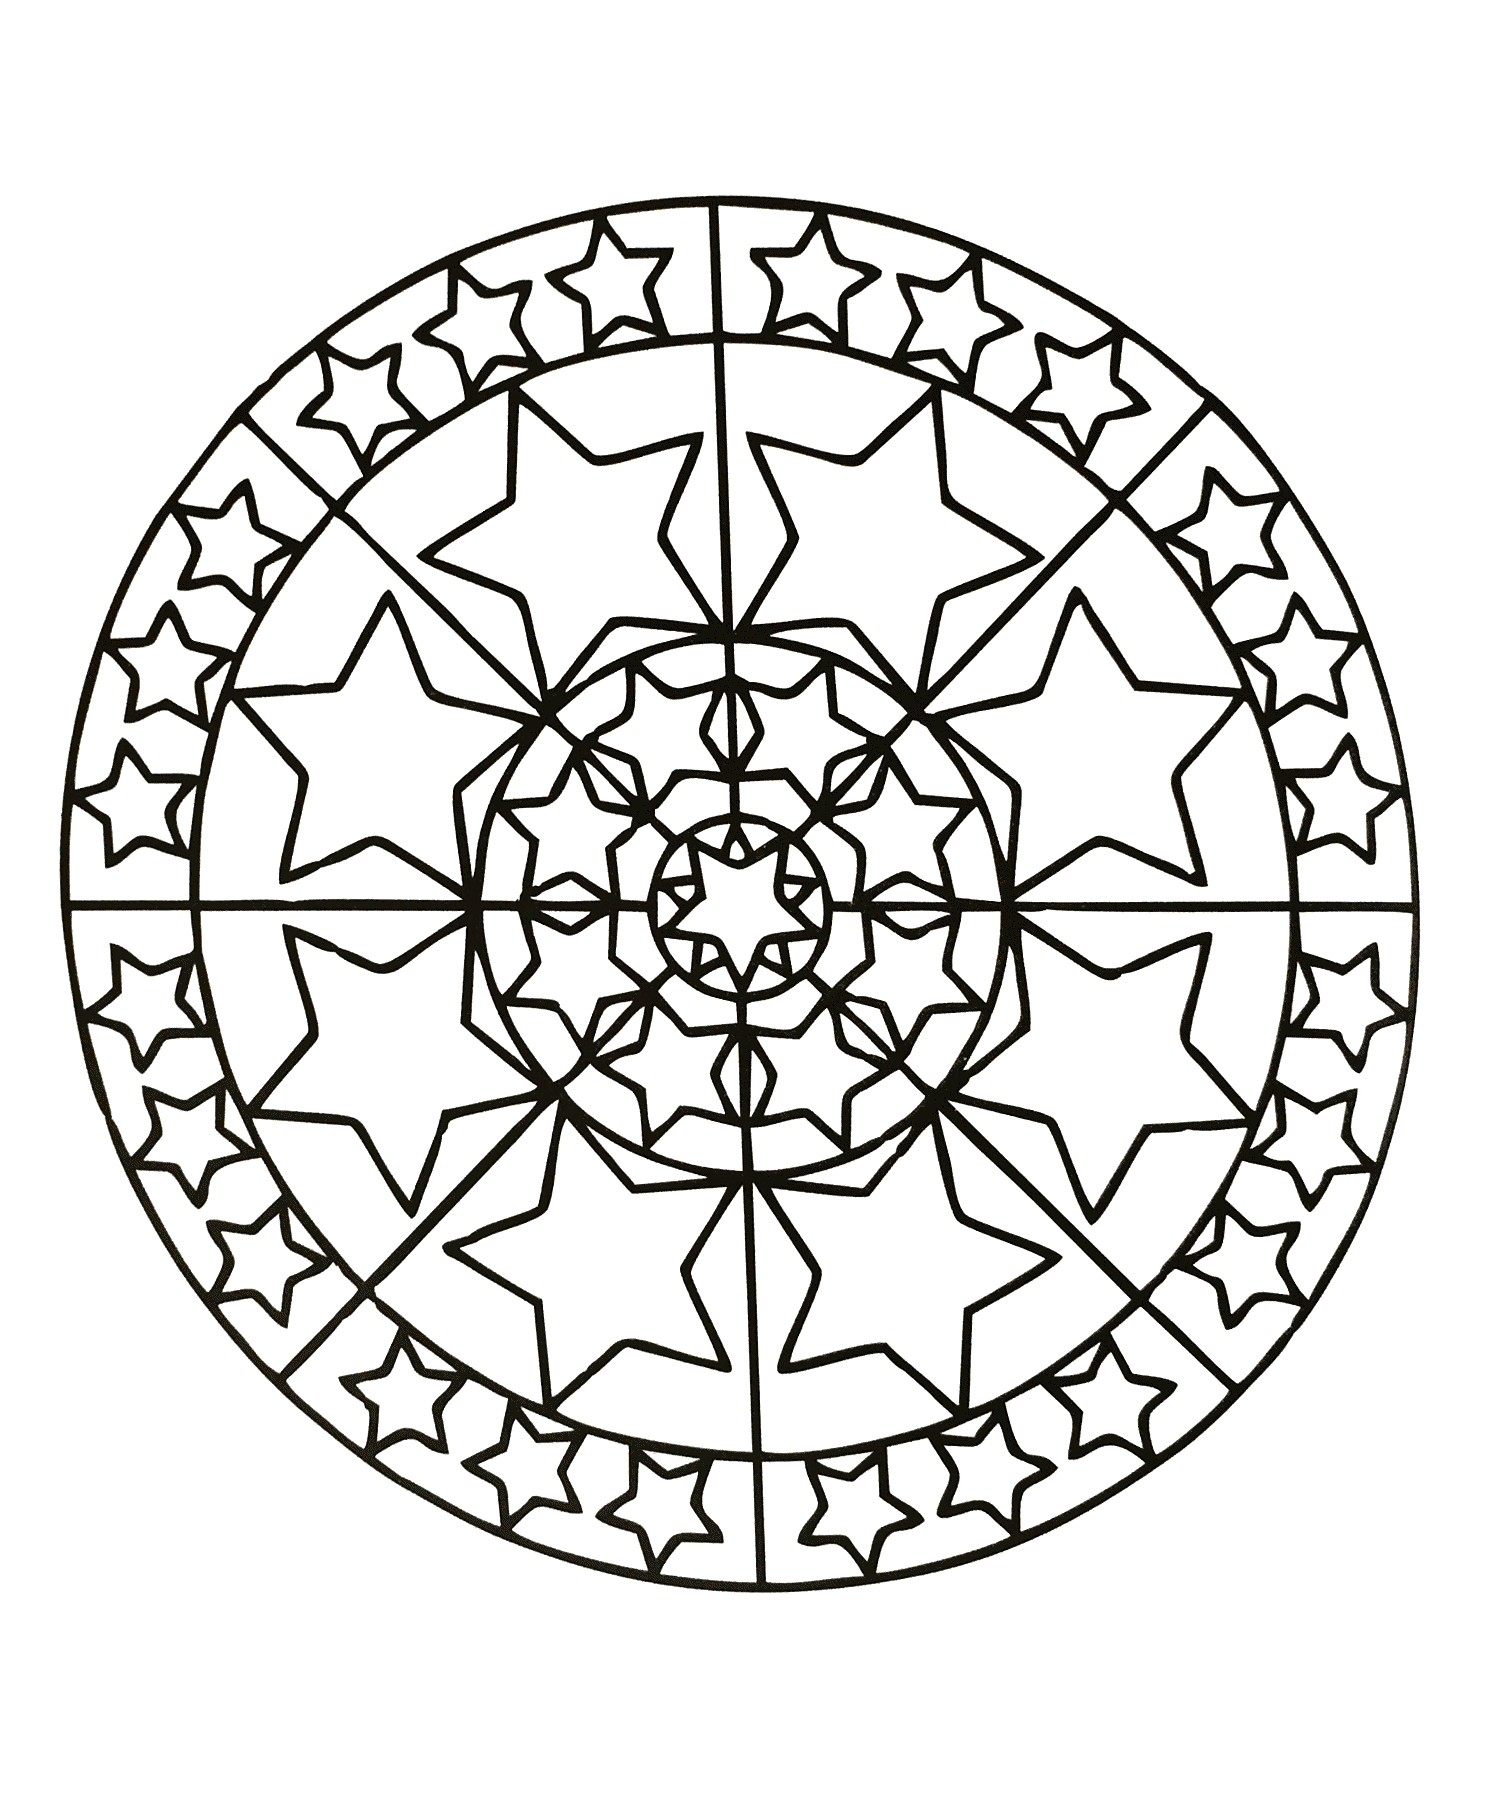 Mandala to download 71